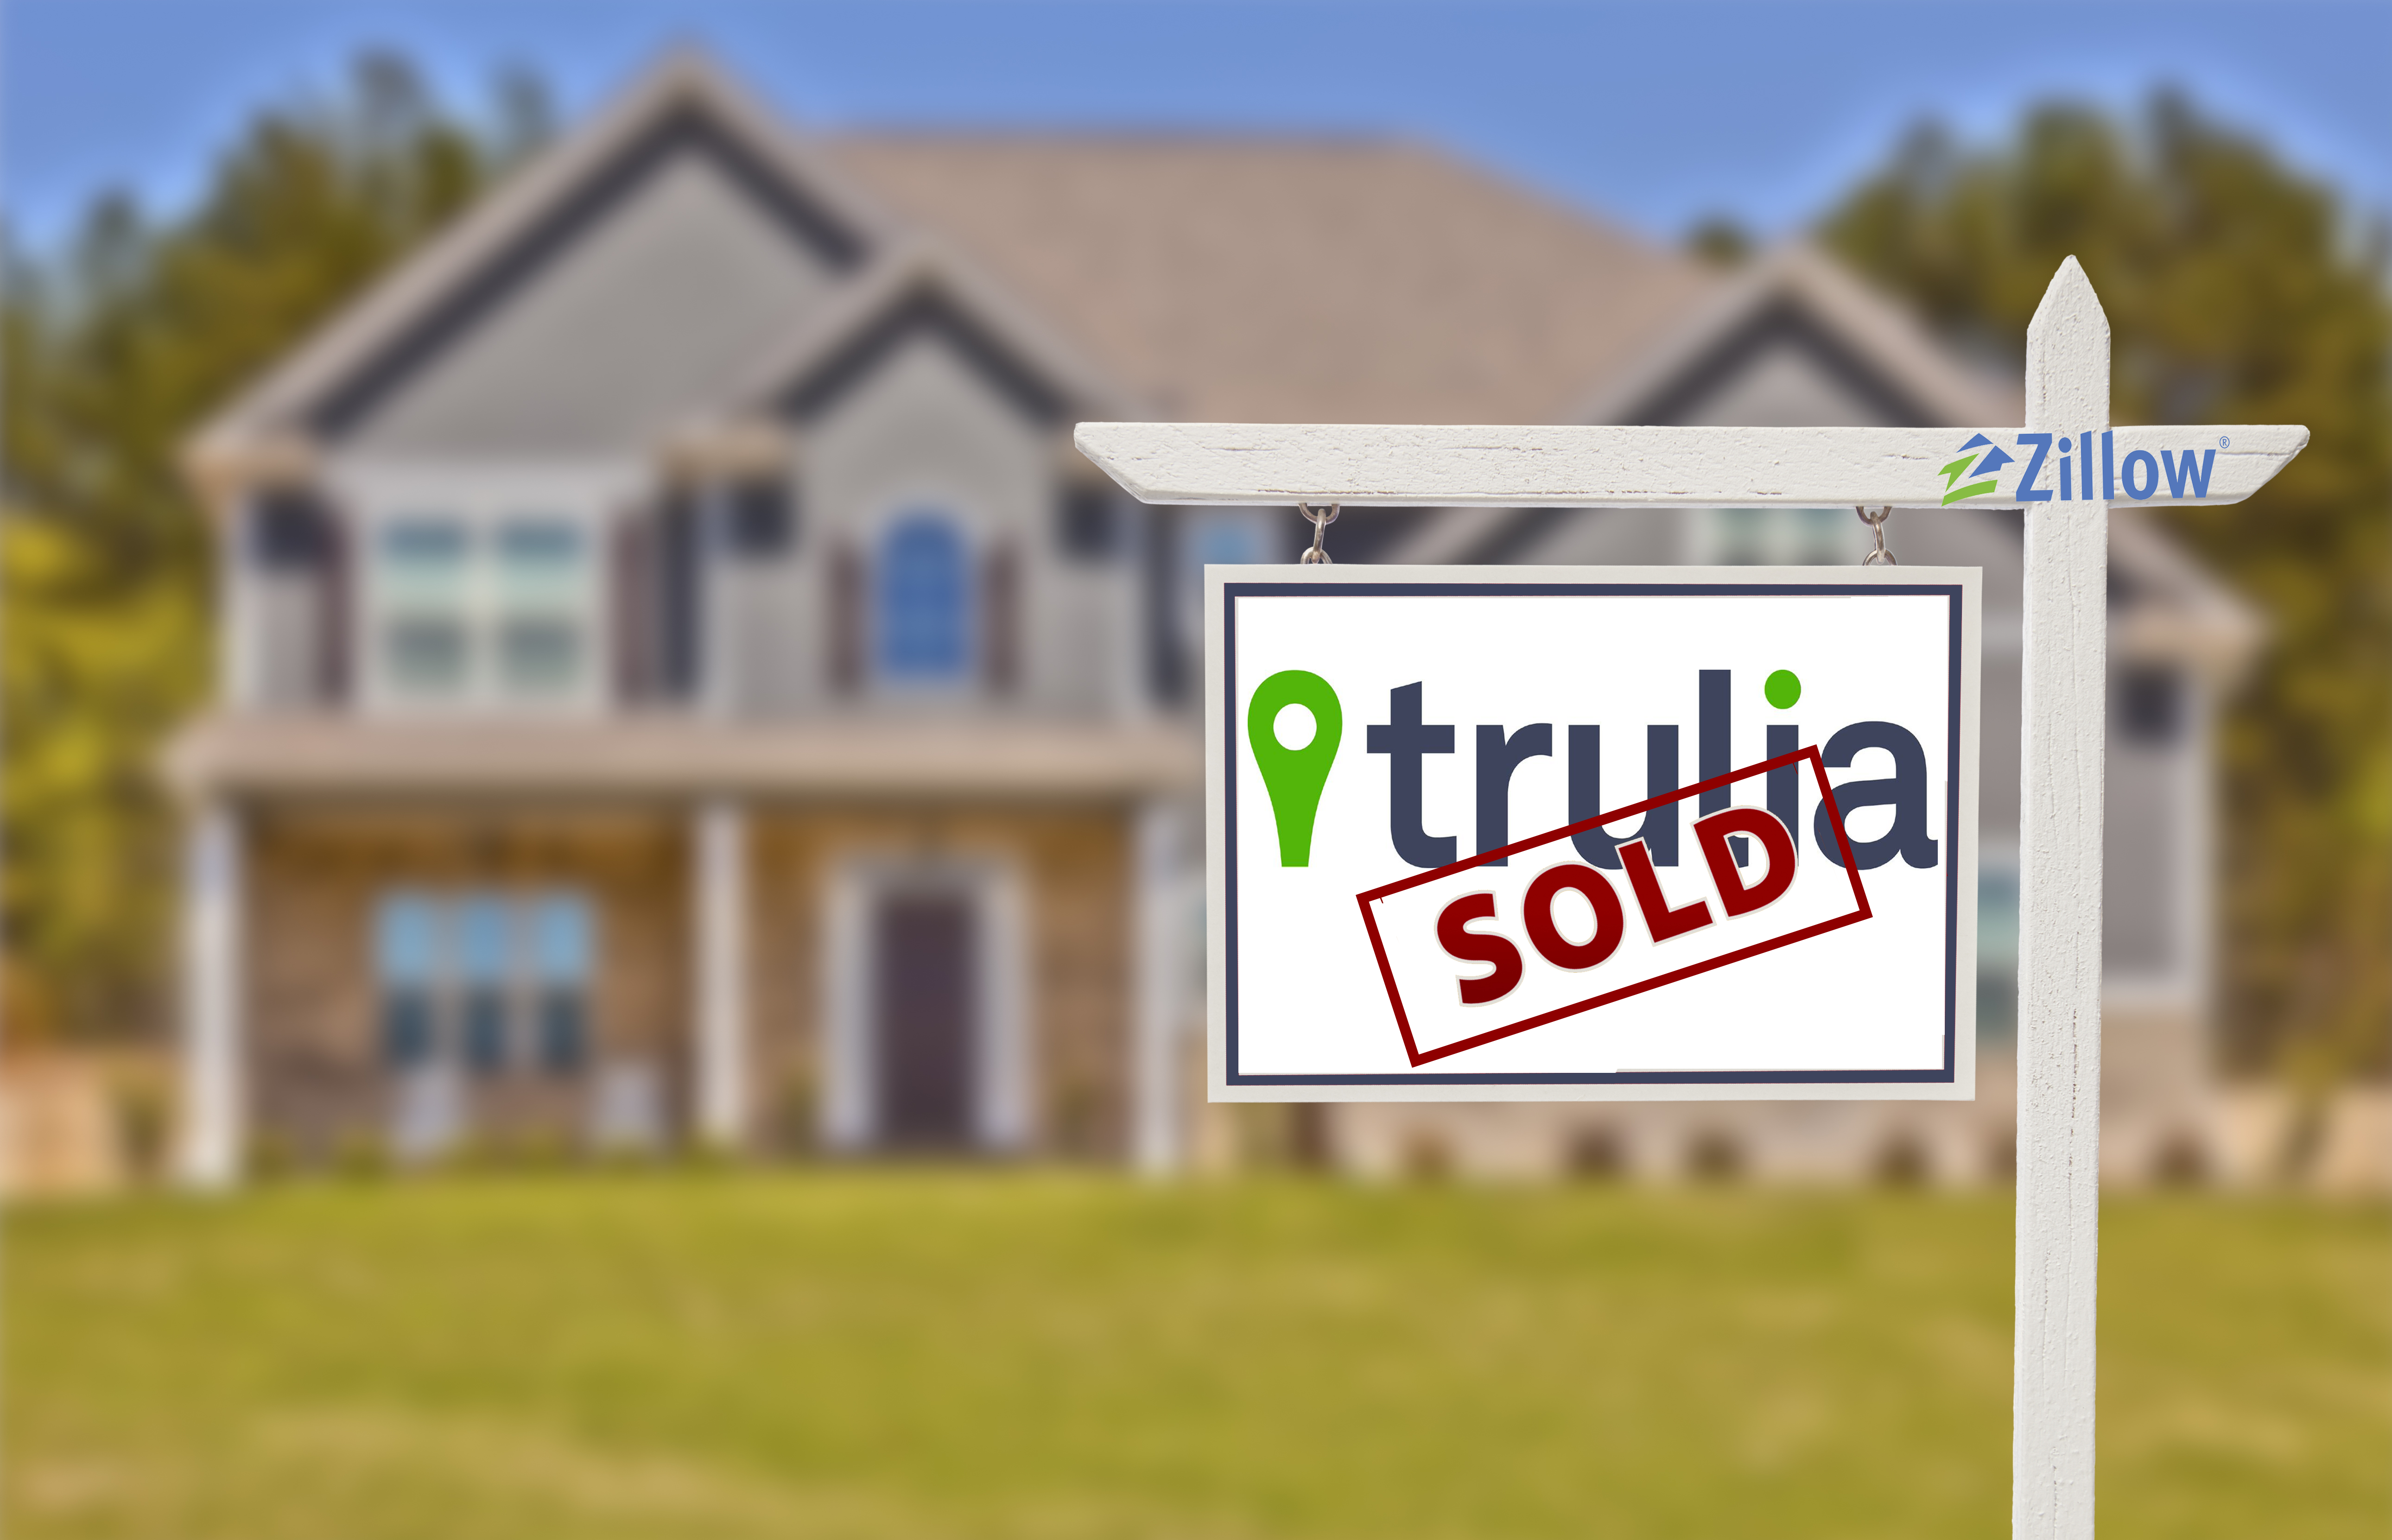 Zillow closes $2 5 billion acquisition of Trulia, plans to